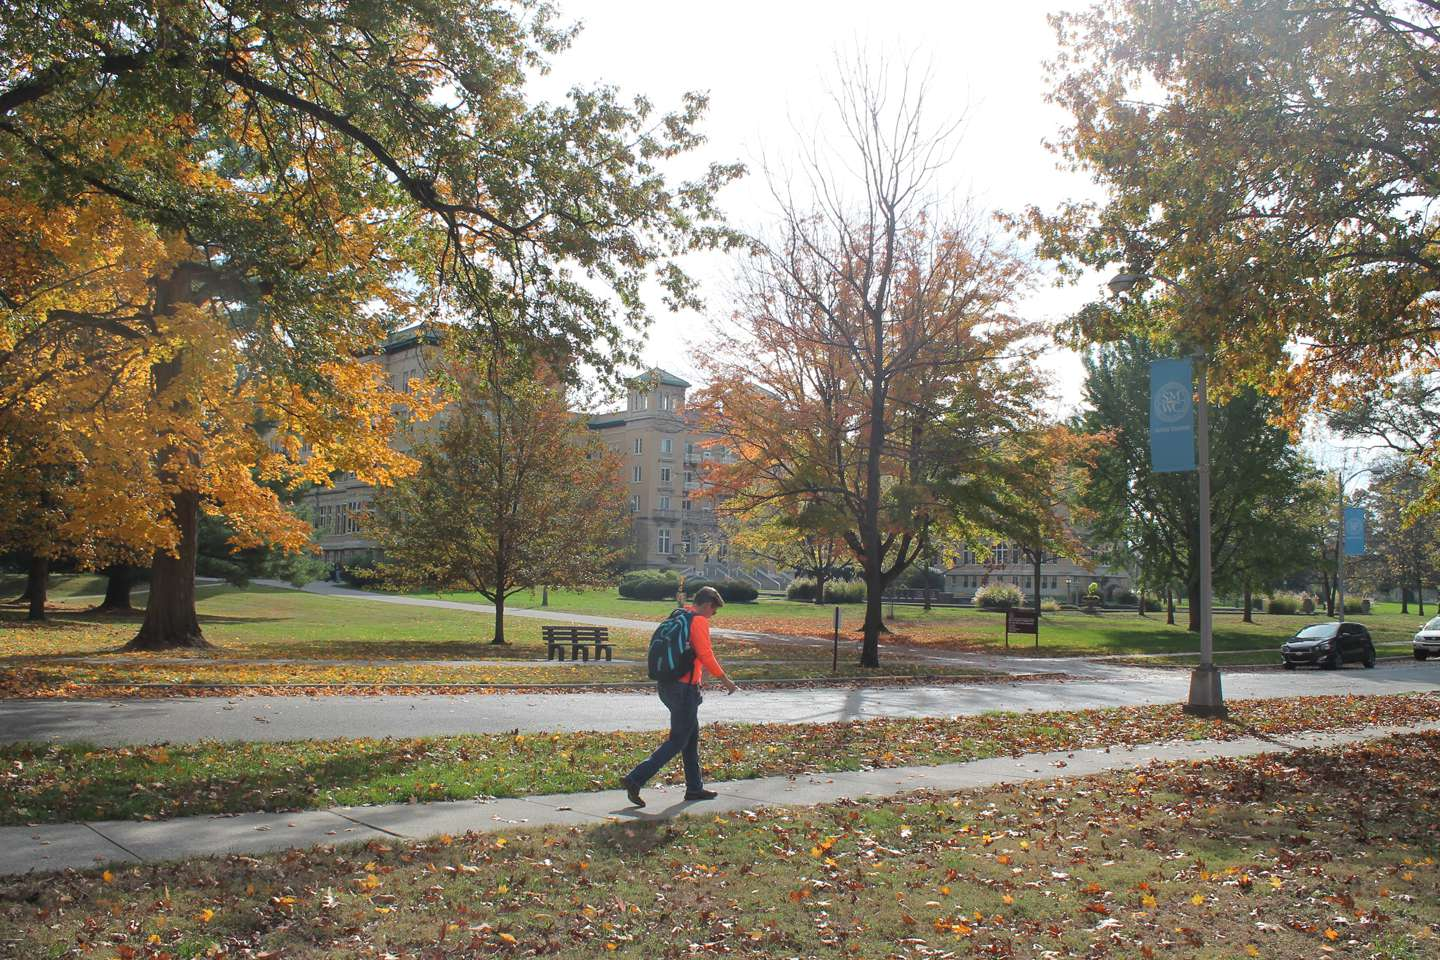 A student walks across campus with the fall leaves and Le Fer Hall in the background.